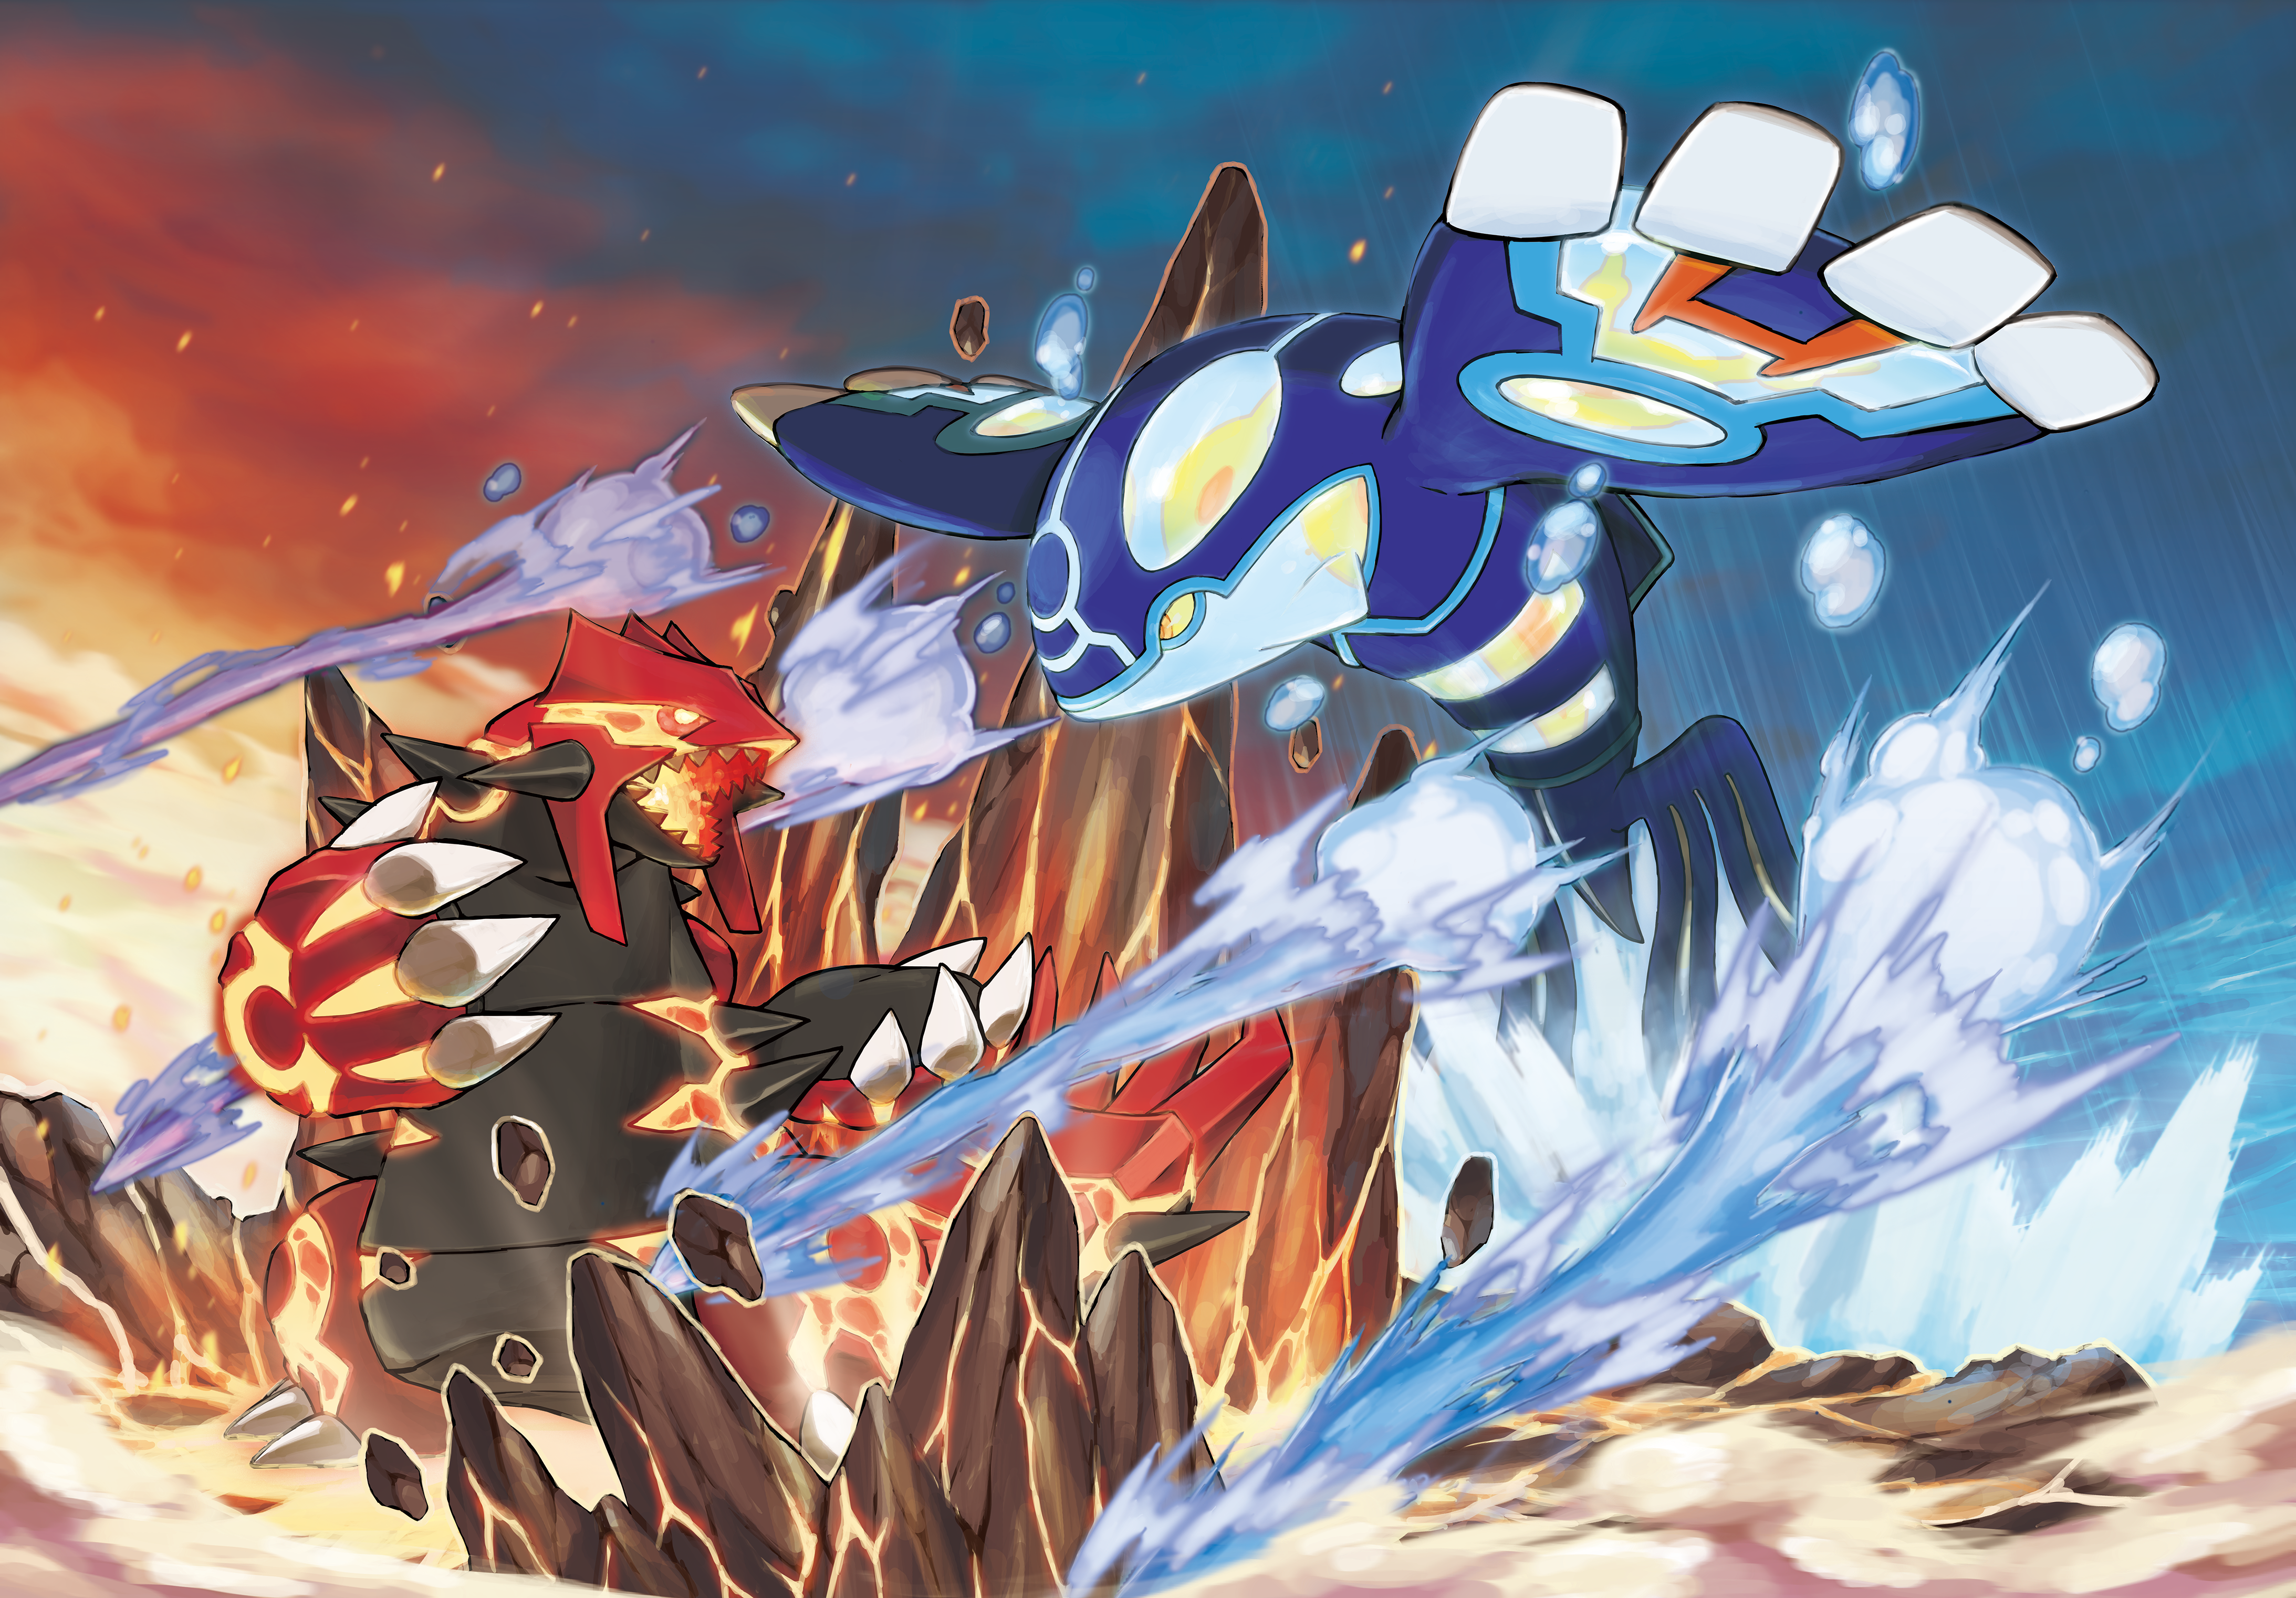 Primal Kyogre Vs Primal Groudon pokémon omega ruby and alpha sapphire cheats: how to get primal